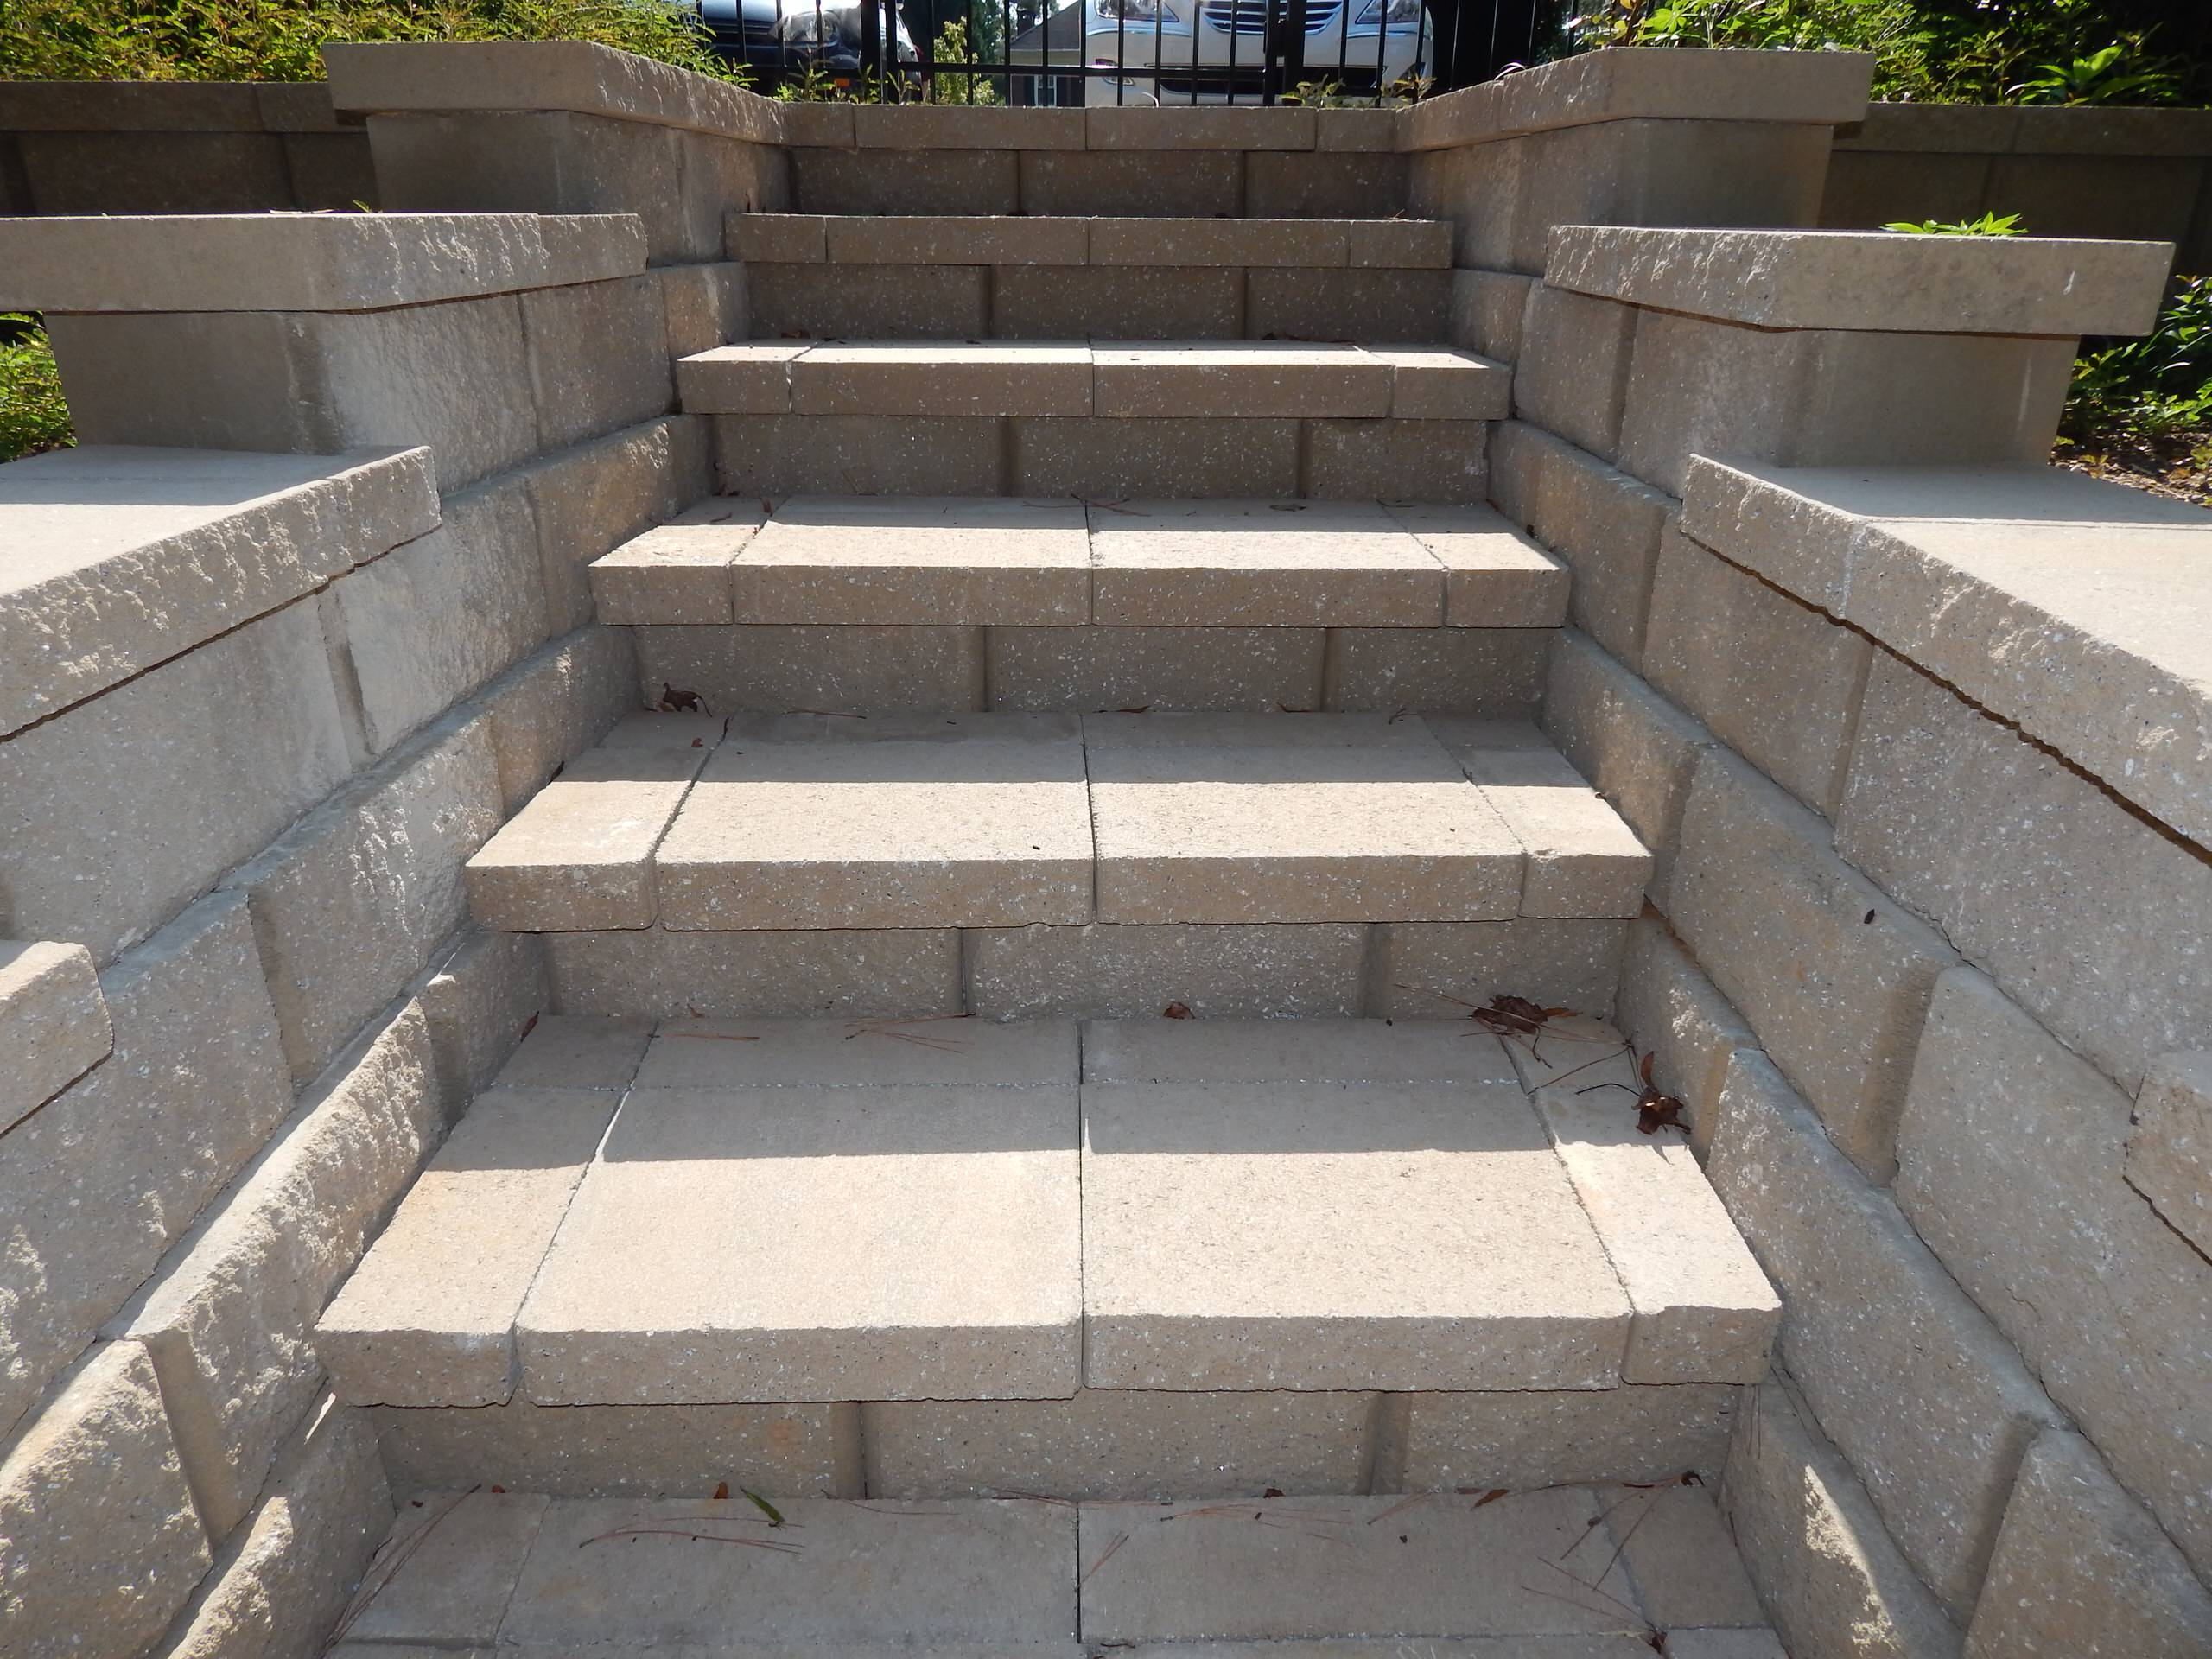 Block stairs and retaining wall